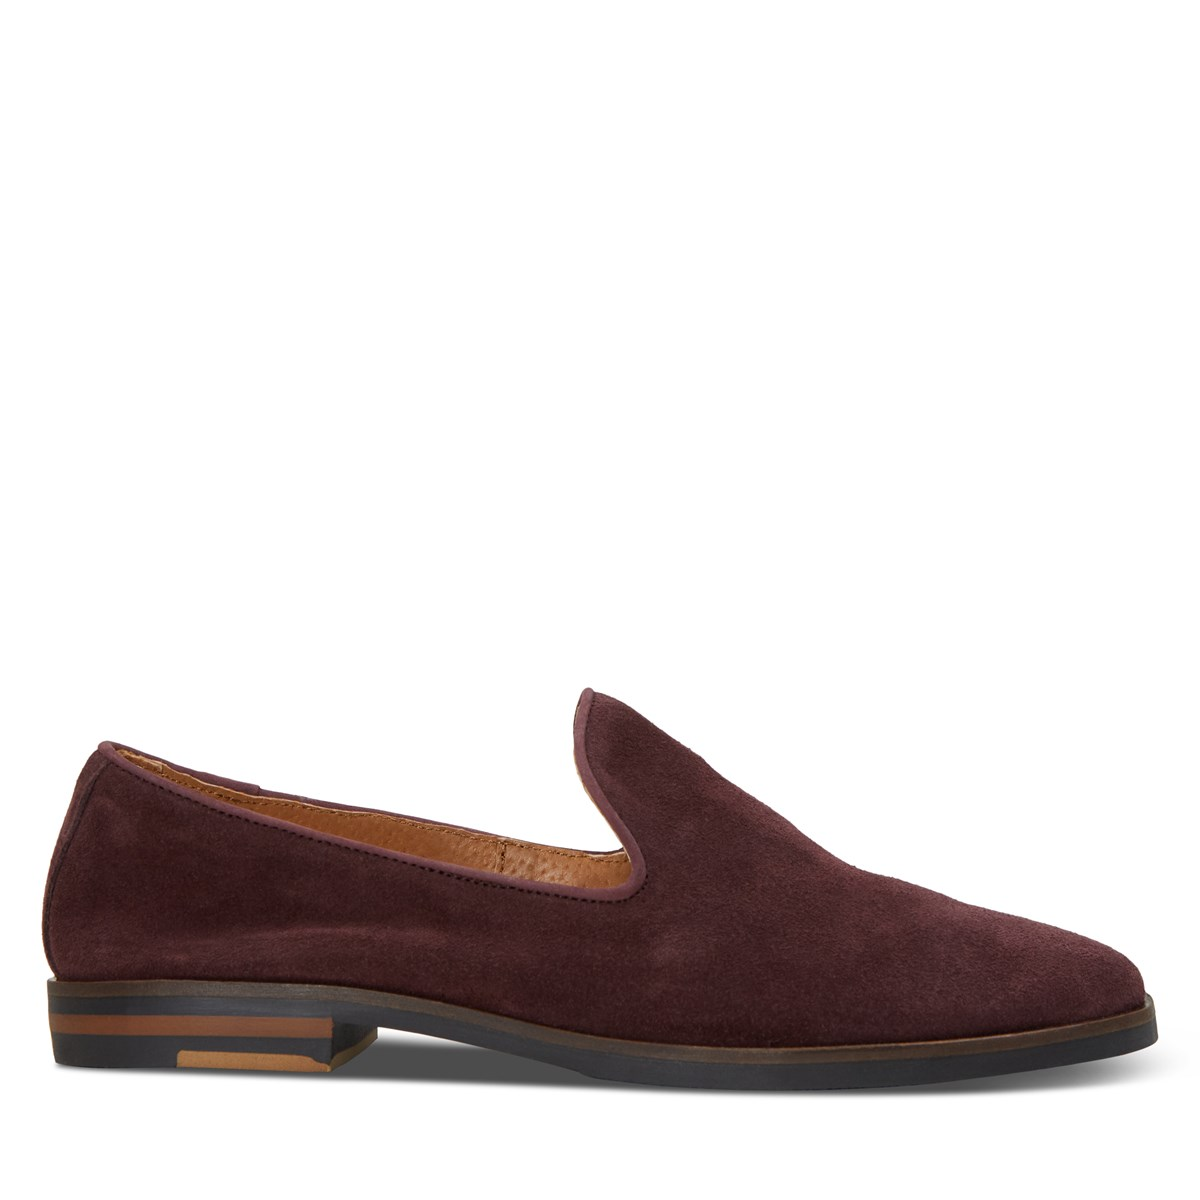 Women's Ava Loafer in Bordeaux